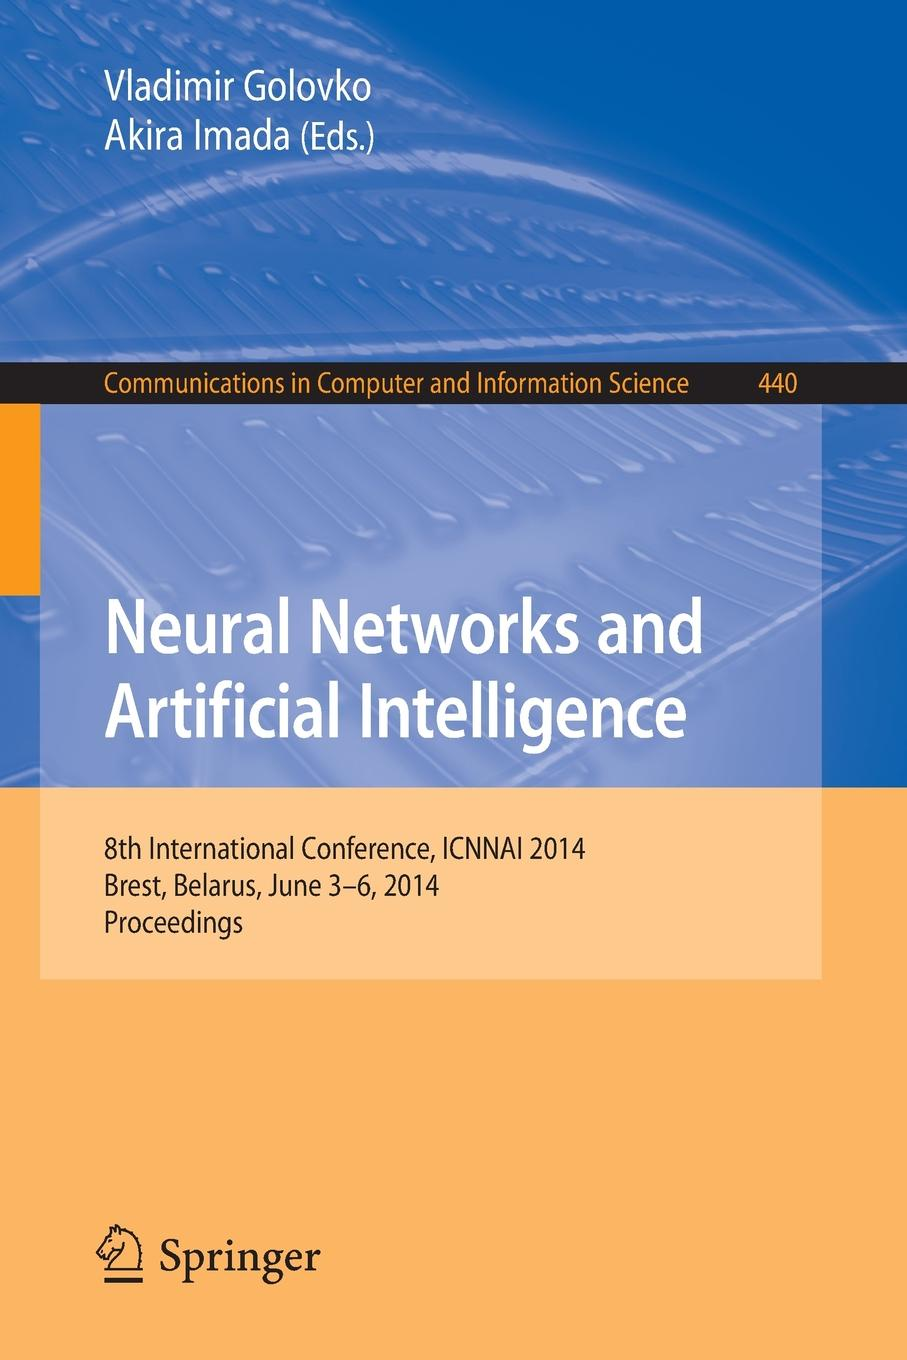 Neural Networks and Artificial Intelligence. 8th International Conference, Icnnai 2014, Brest, Belarus, June 3-6, 2014. Proceedings цена